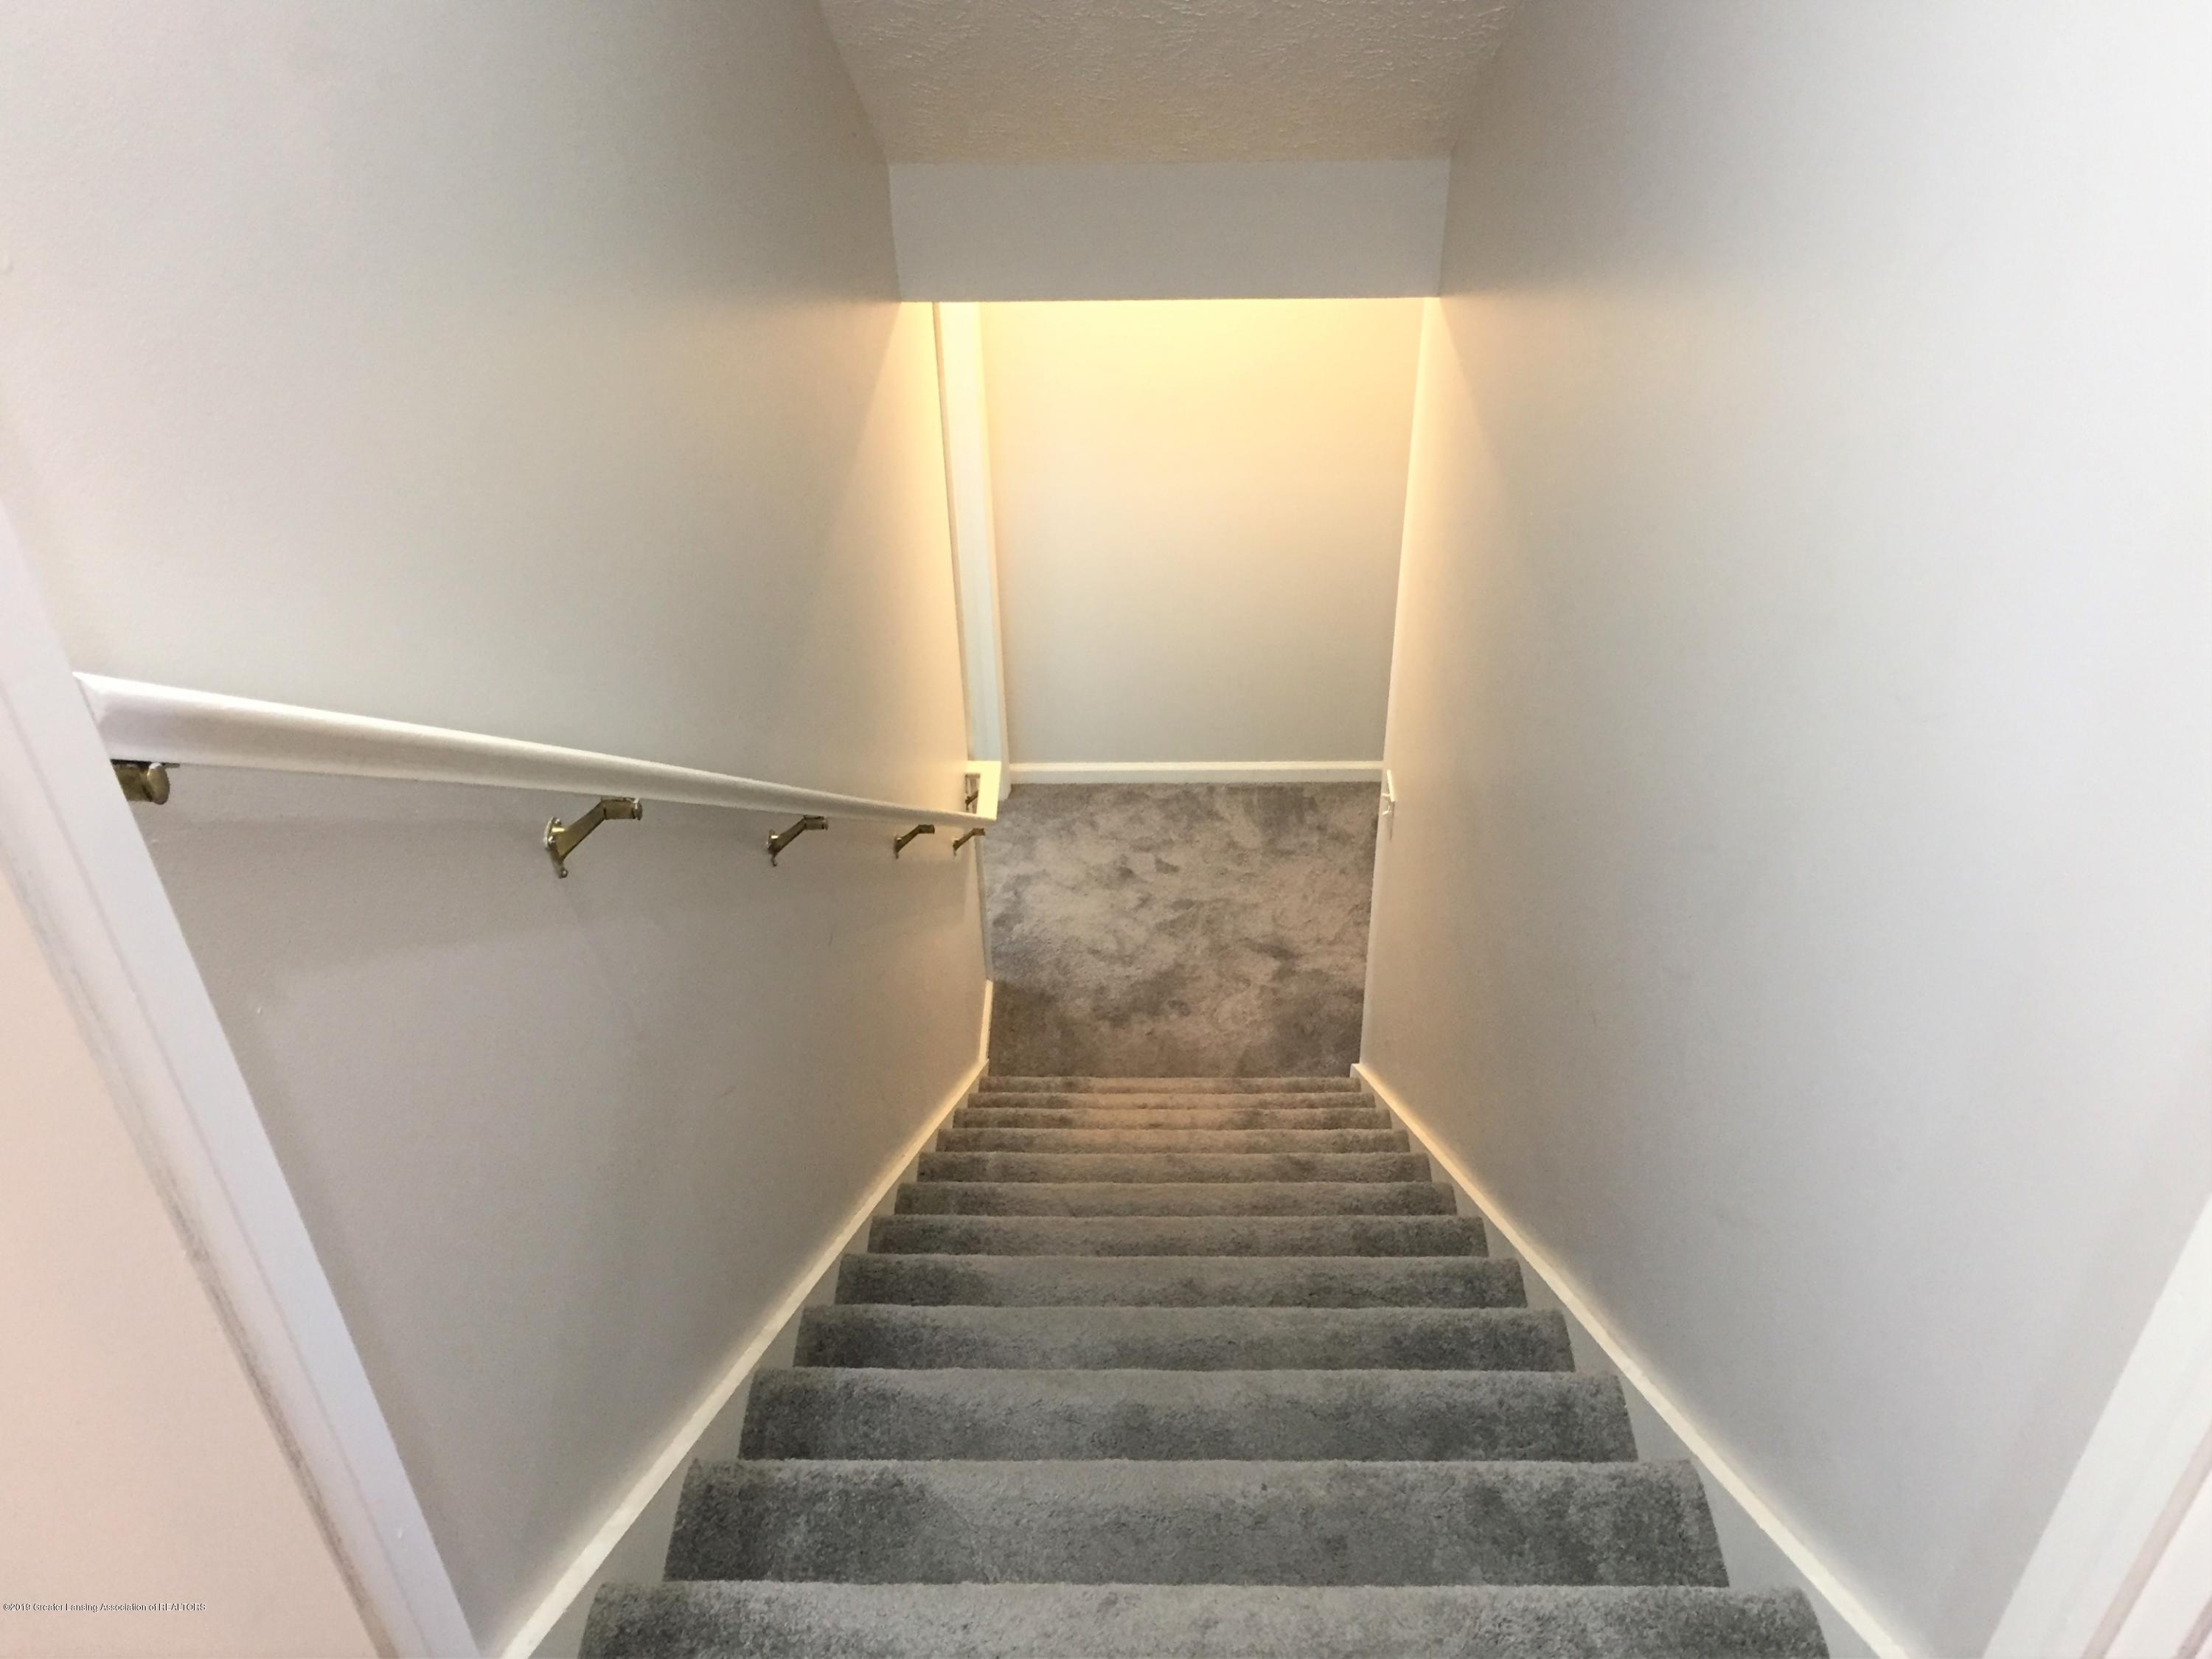 211 E Williams St - 14 Stairs to lower level - 14